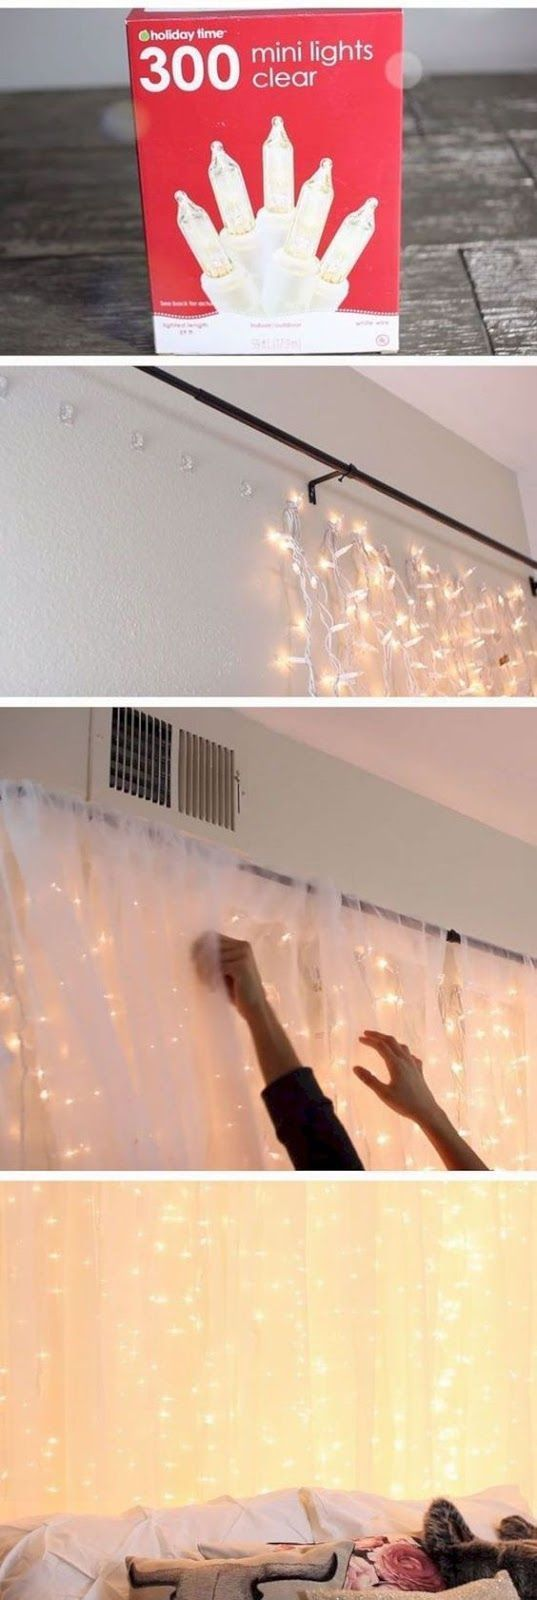 14 DIY Home Decor on a Budget Apartment Ideas